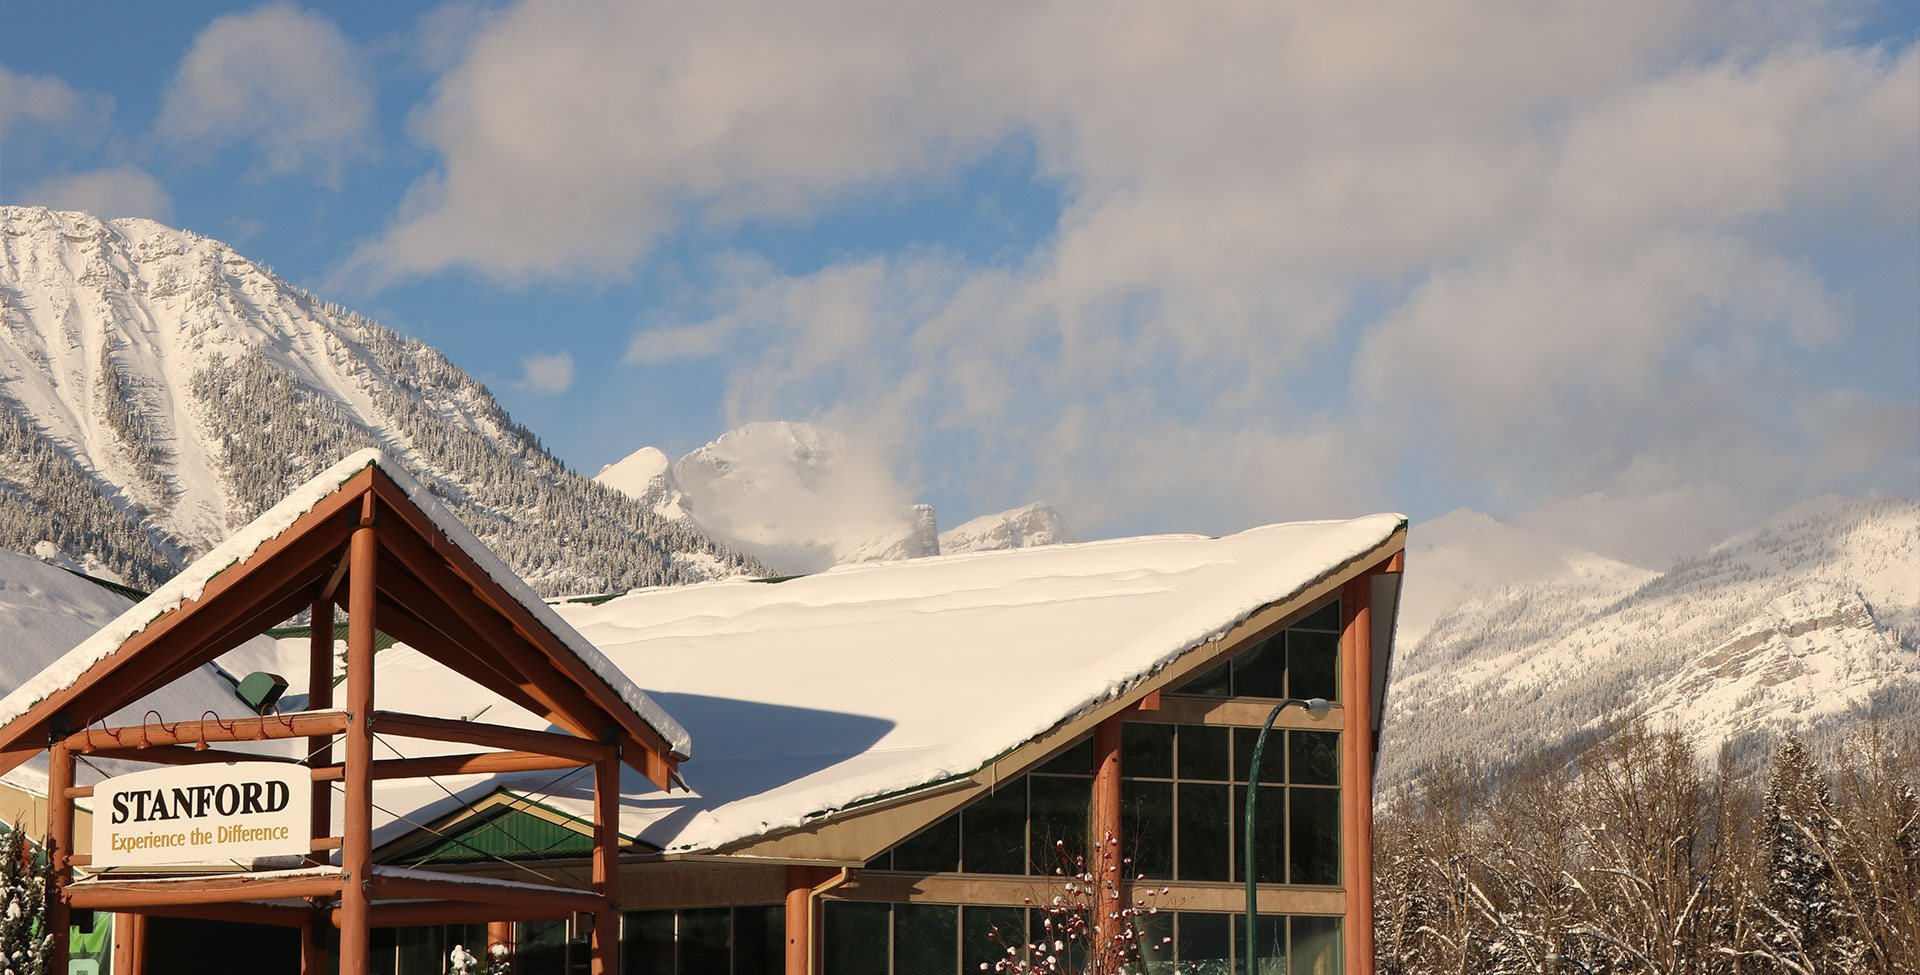 The snow-coated multi gabled rooftop of Stanford Fernie Resort stands in the foreground against the snow laden slopes and alpines trees of the Rocky Mountains on a bright sunny day.